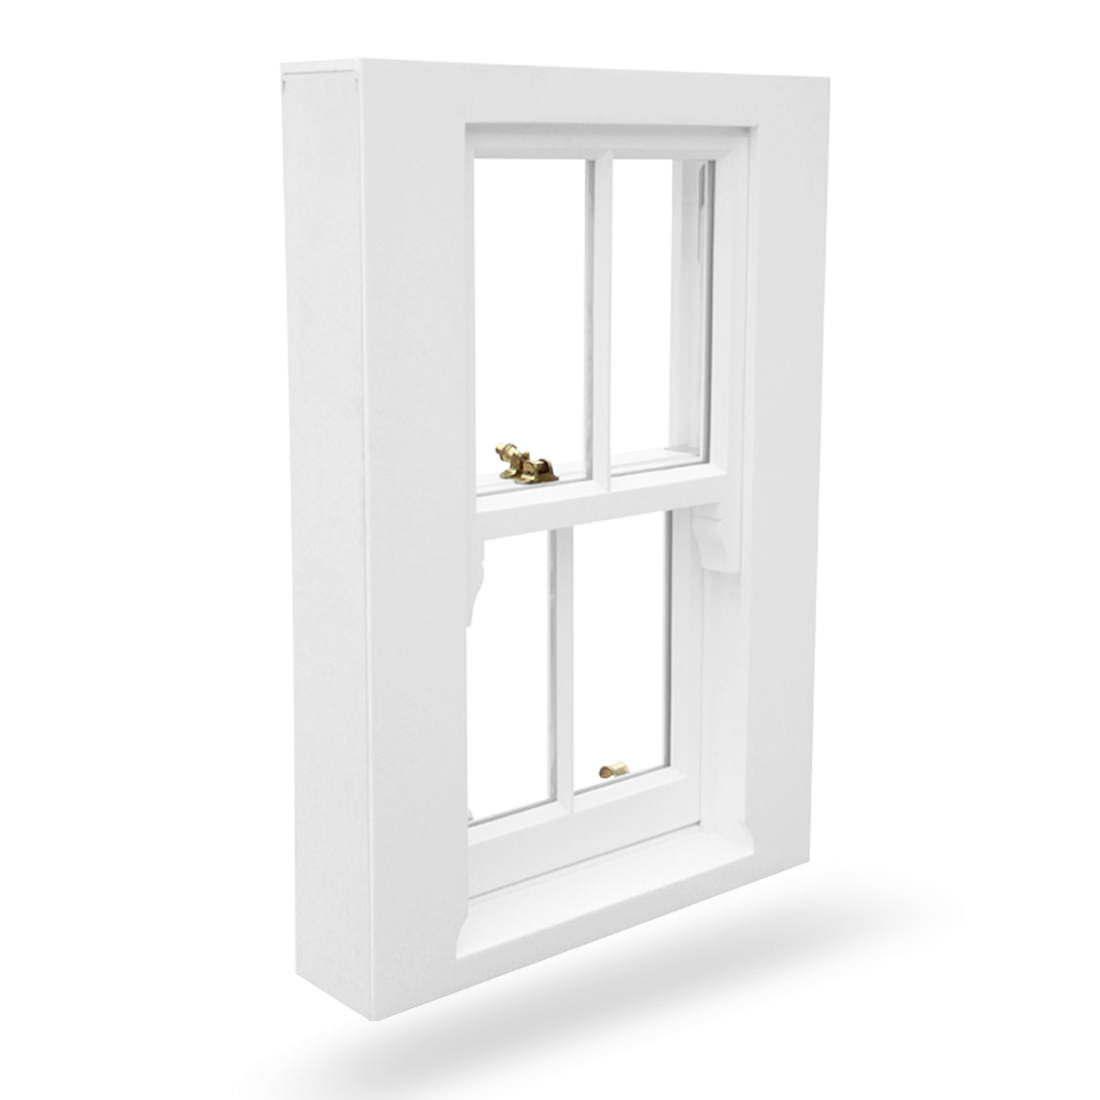 Bereco Timber Windows Surrey